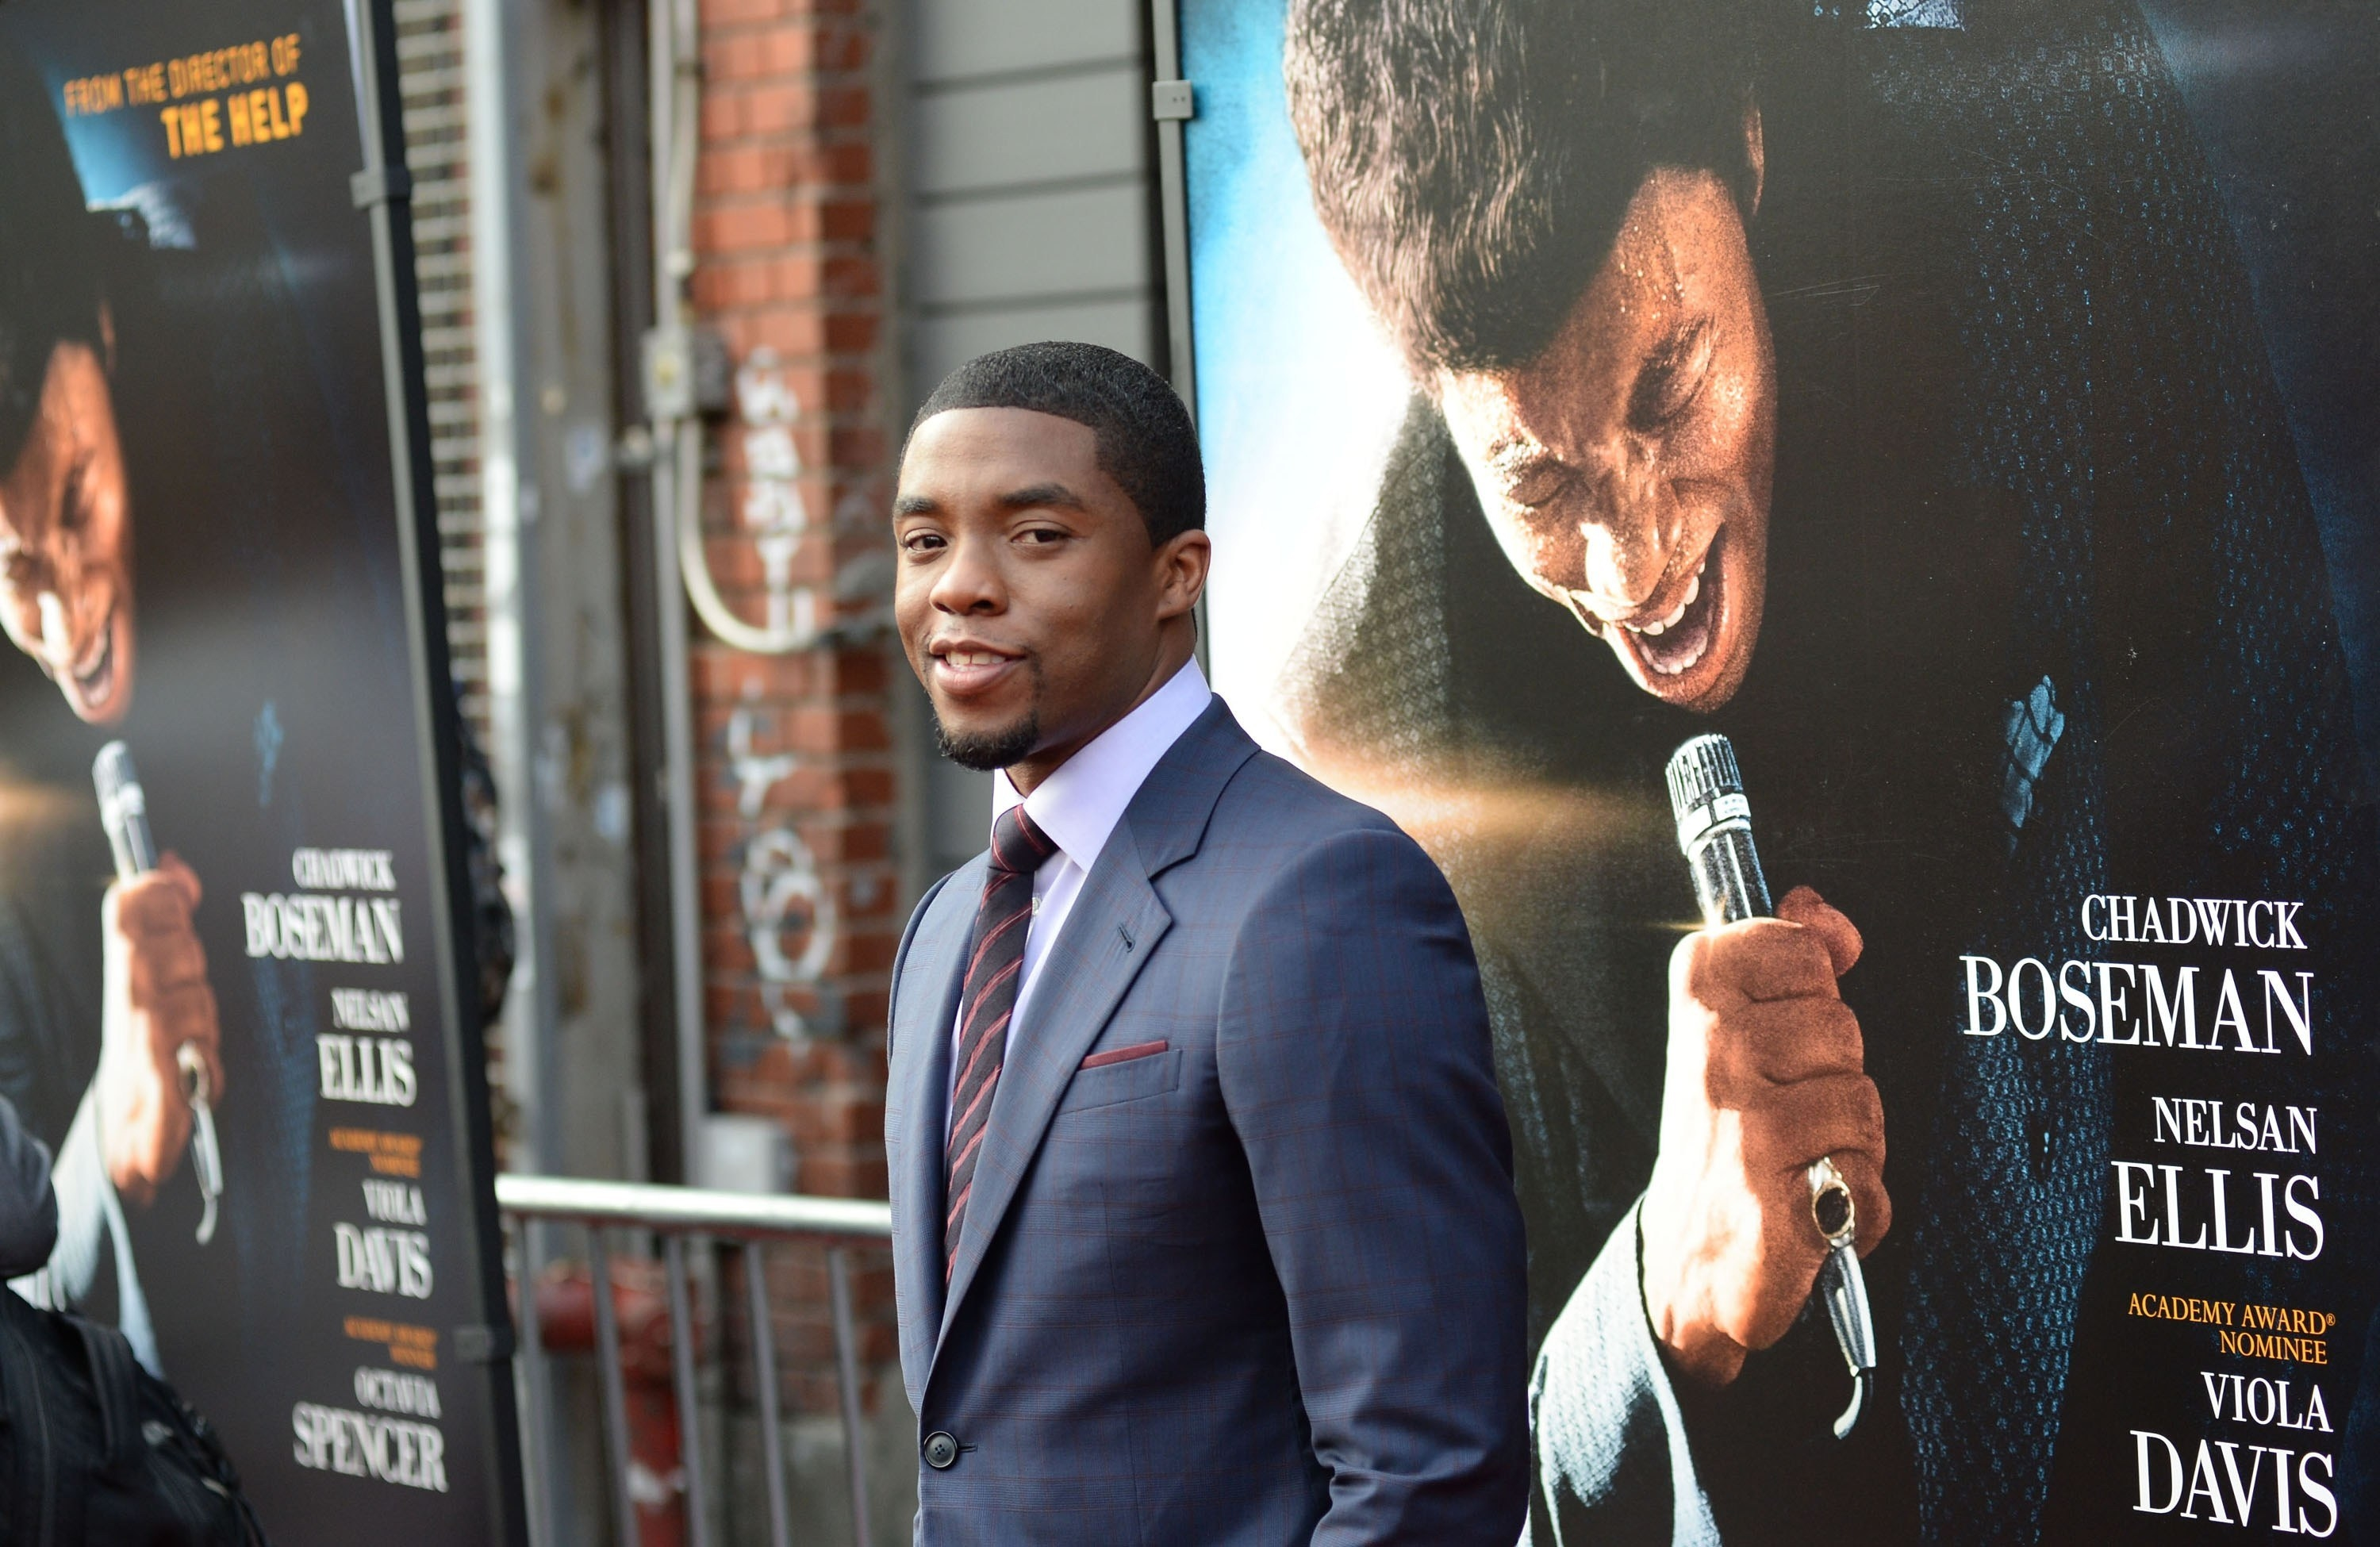 Chadwick A Boseman on the GET ON UP Premiere red carpet in 2014